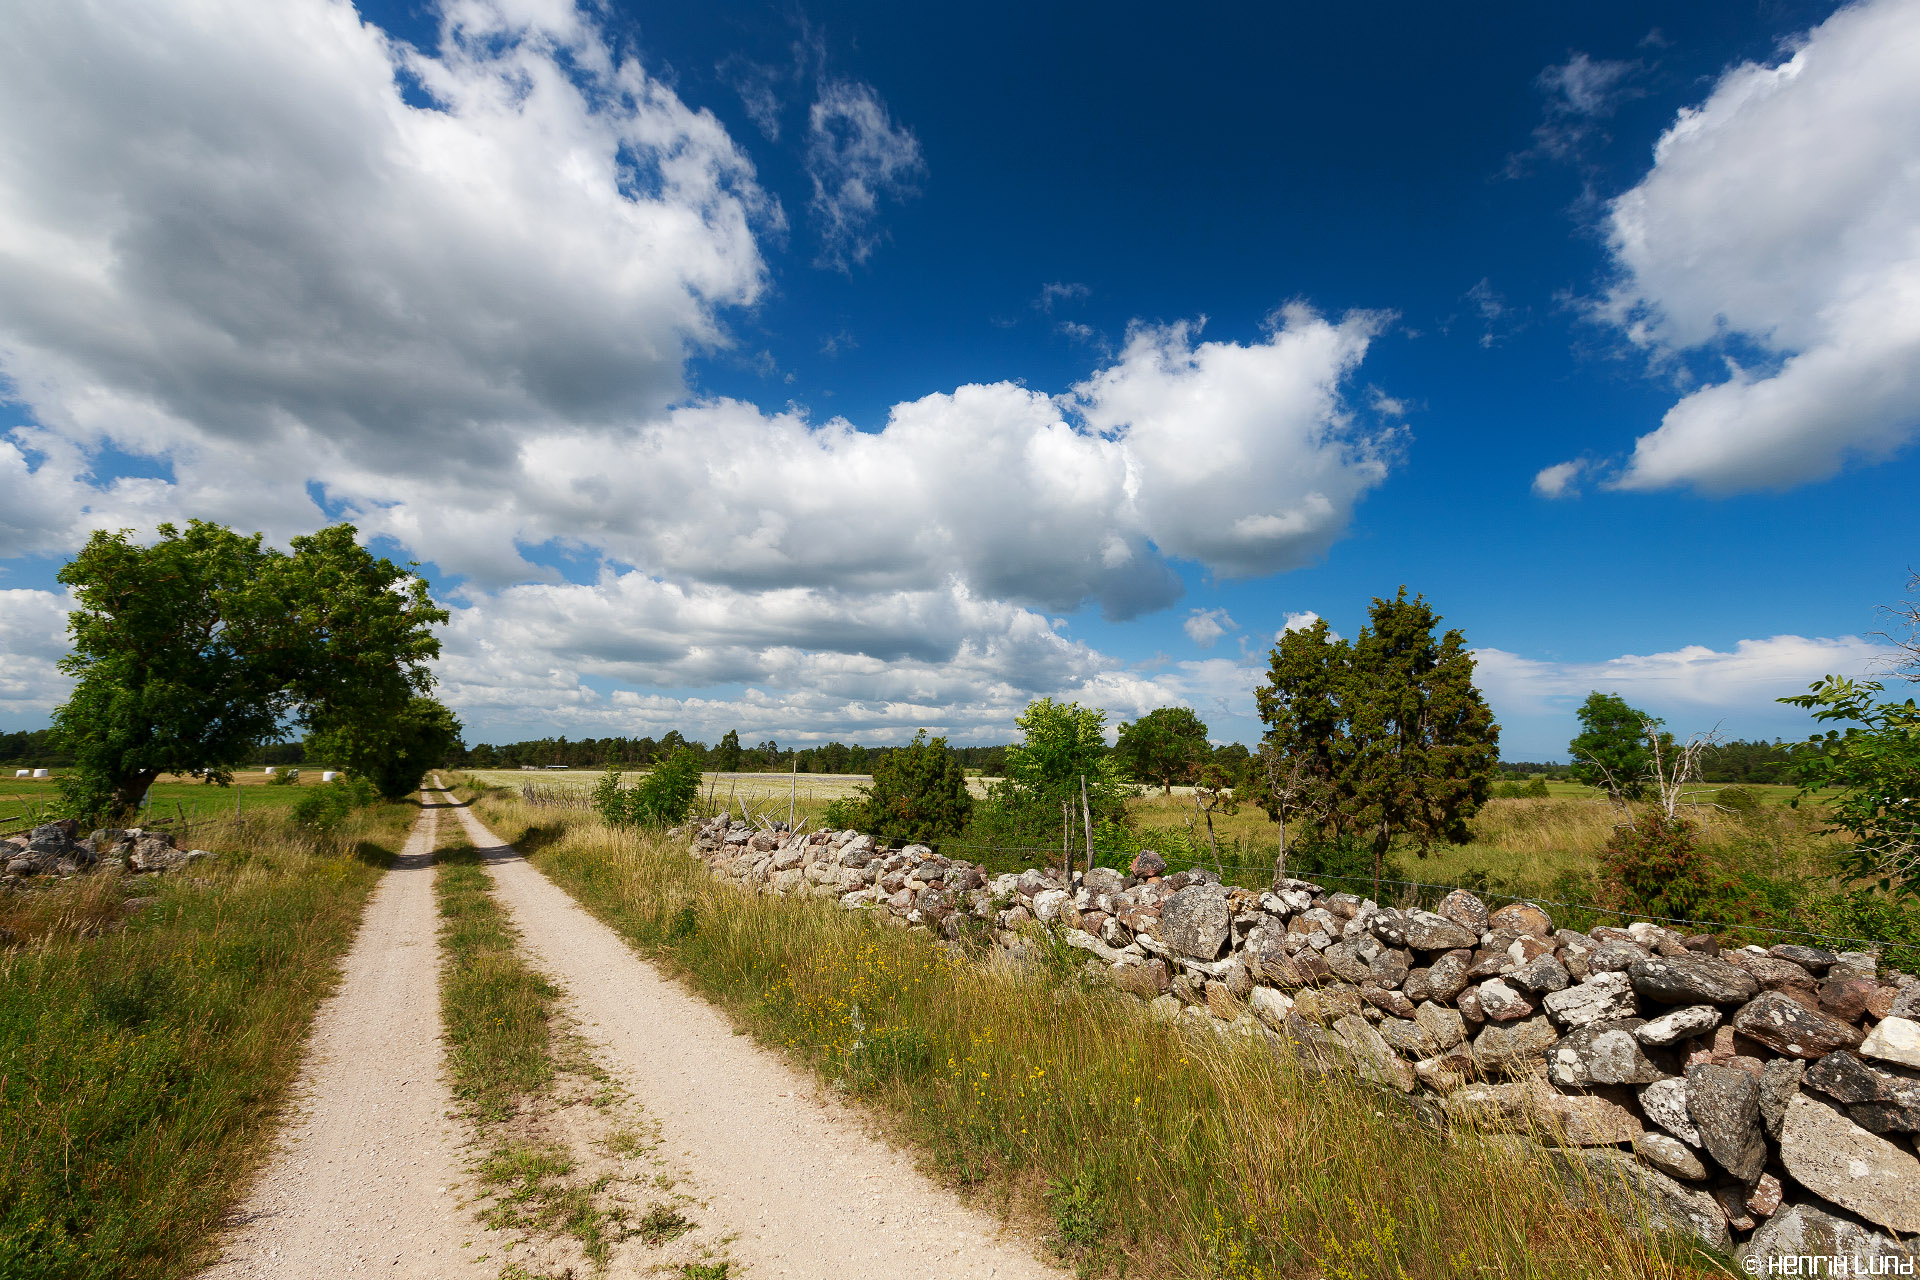 A very typical view from the fields in Gotand, Sweden, July, 2013.